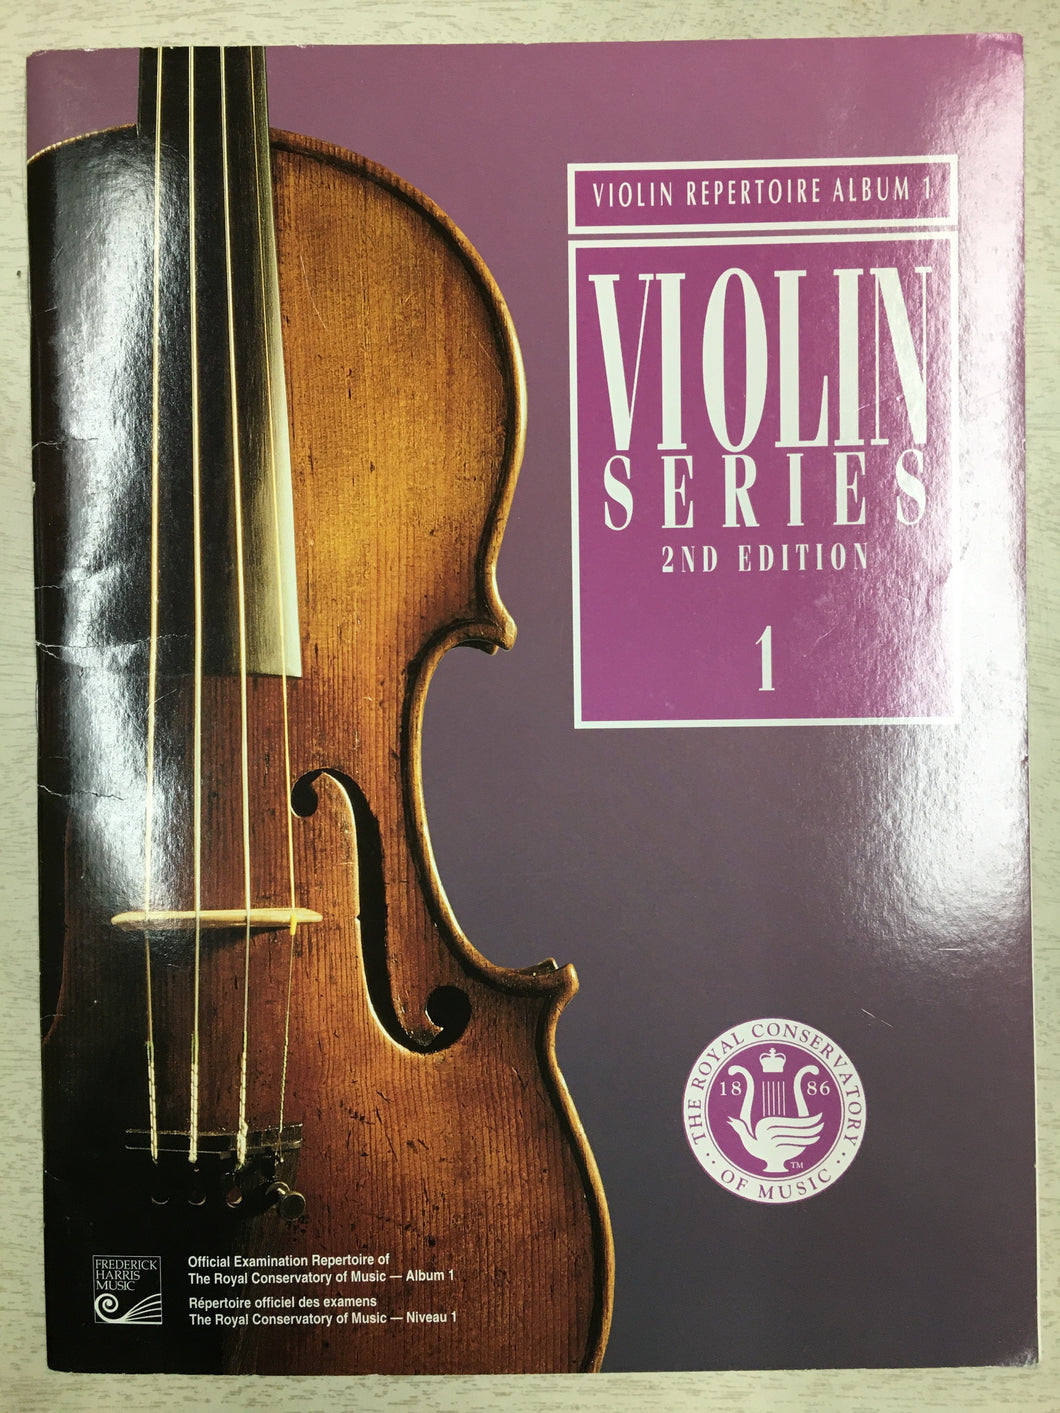 RCM Violin Series 2nd Edition 1 (1999)